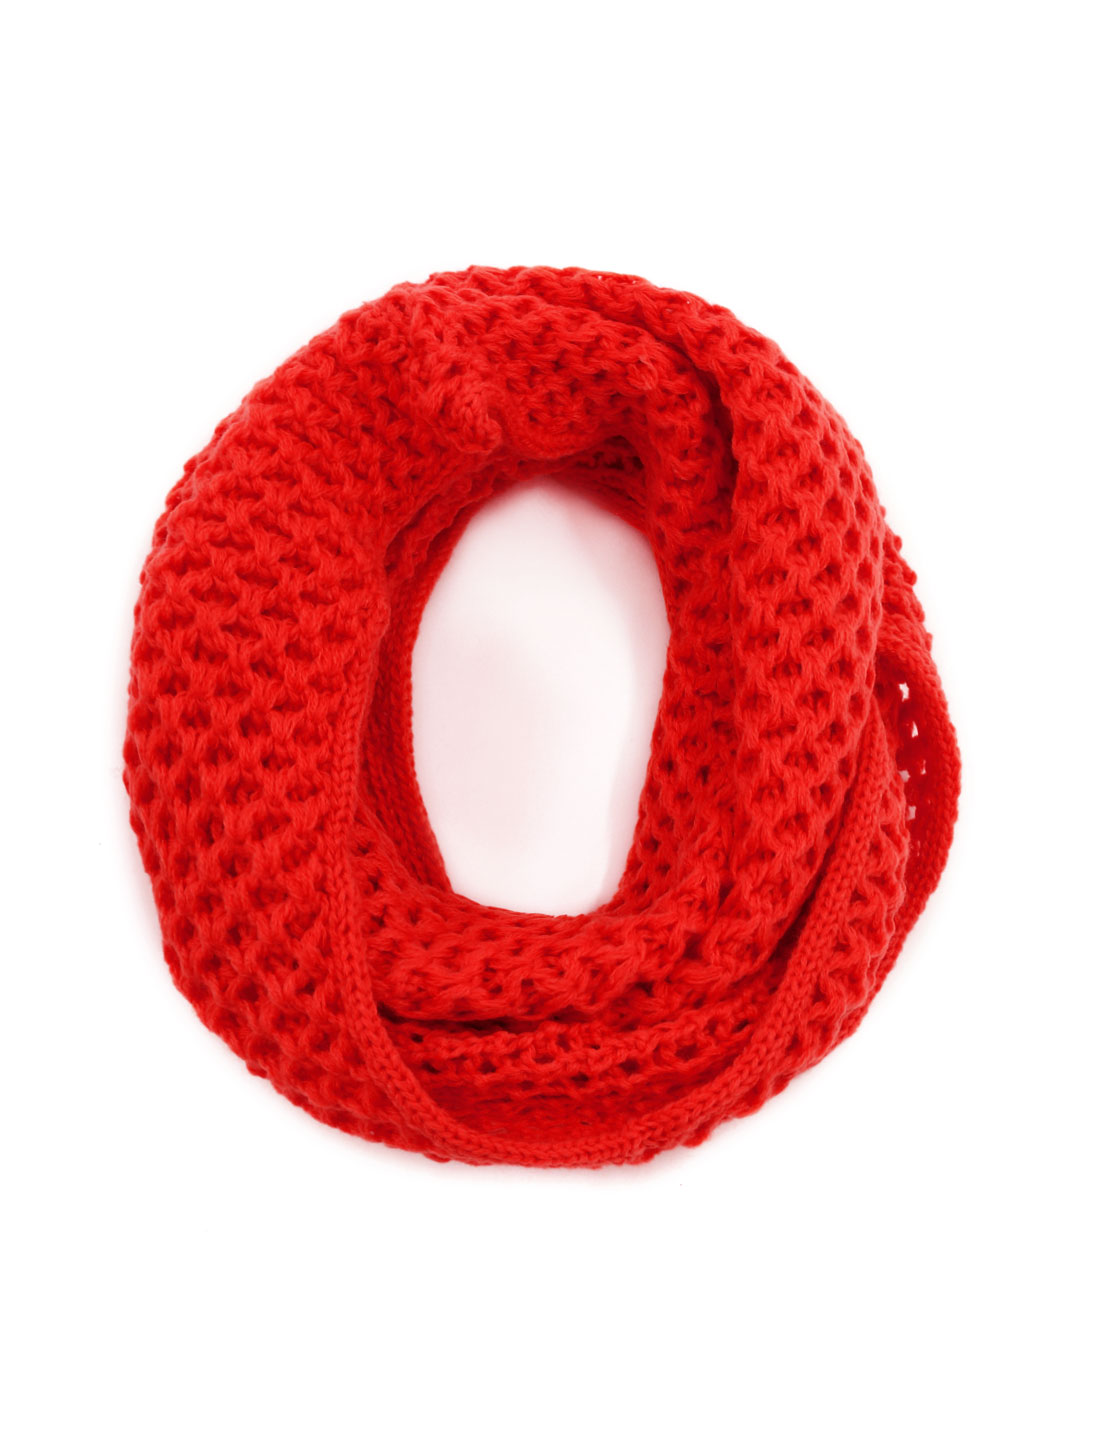 Unisex Winter Wearing Hollow Out Knitted Circle Scarf Red